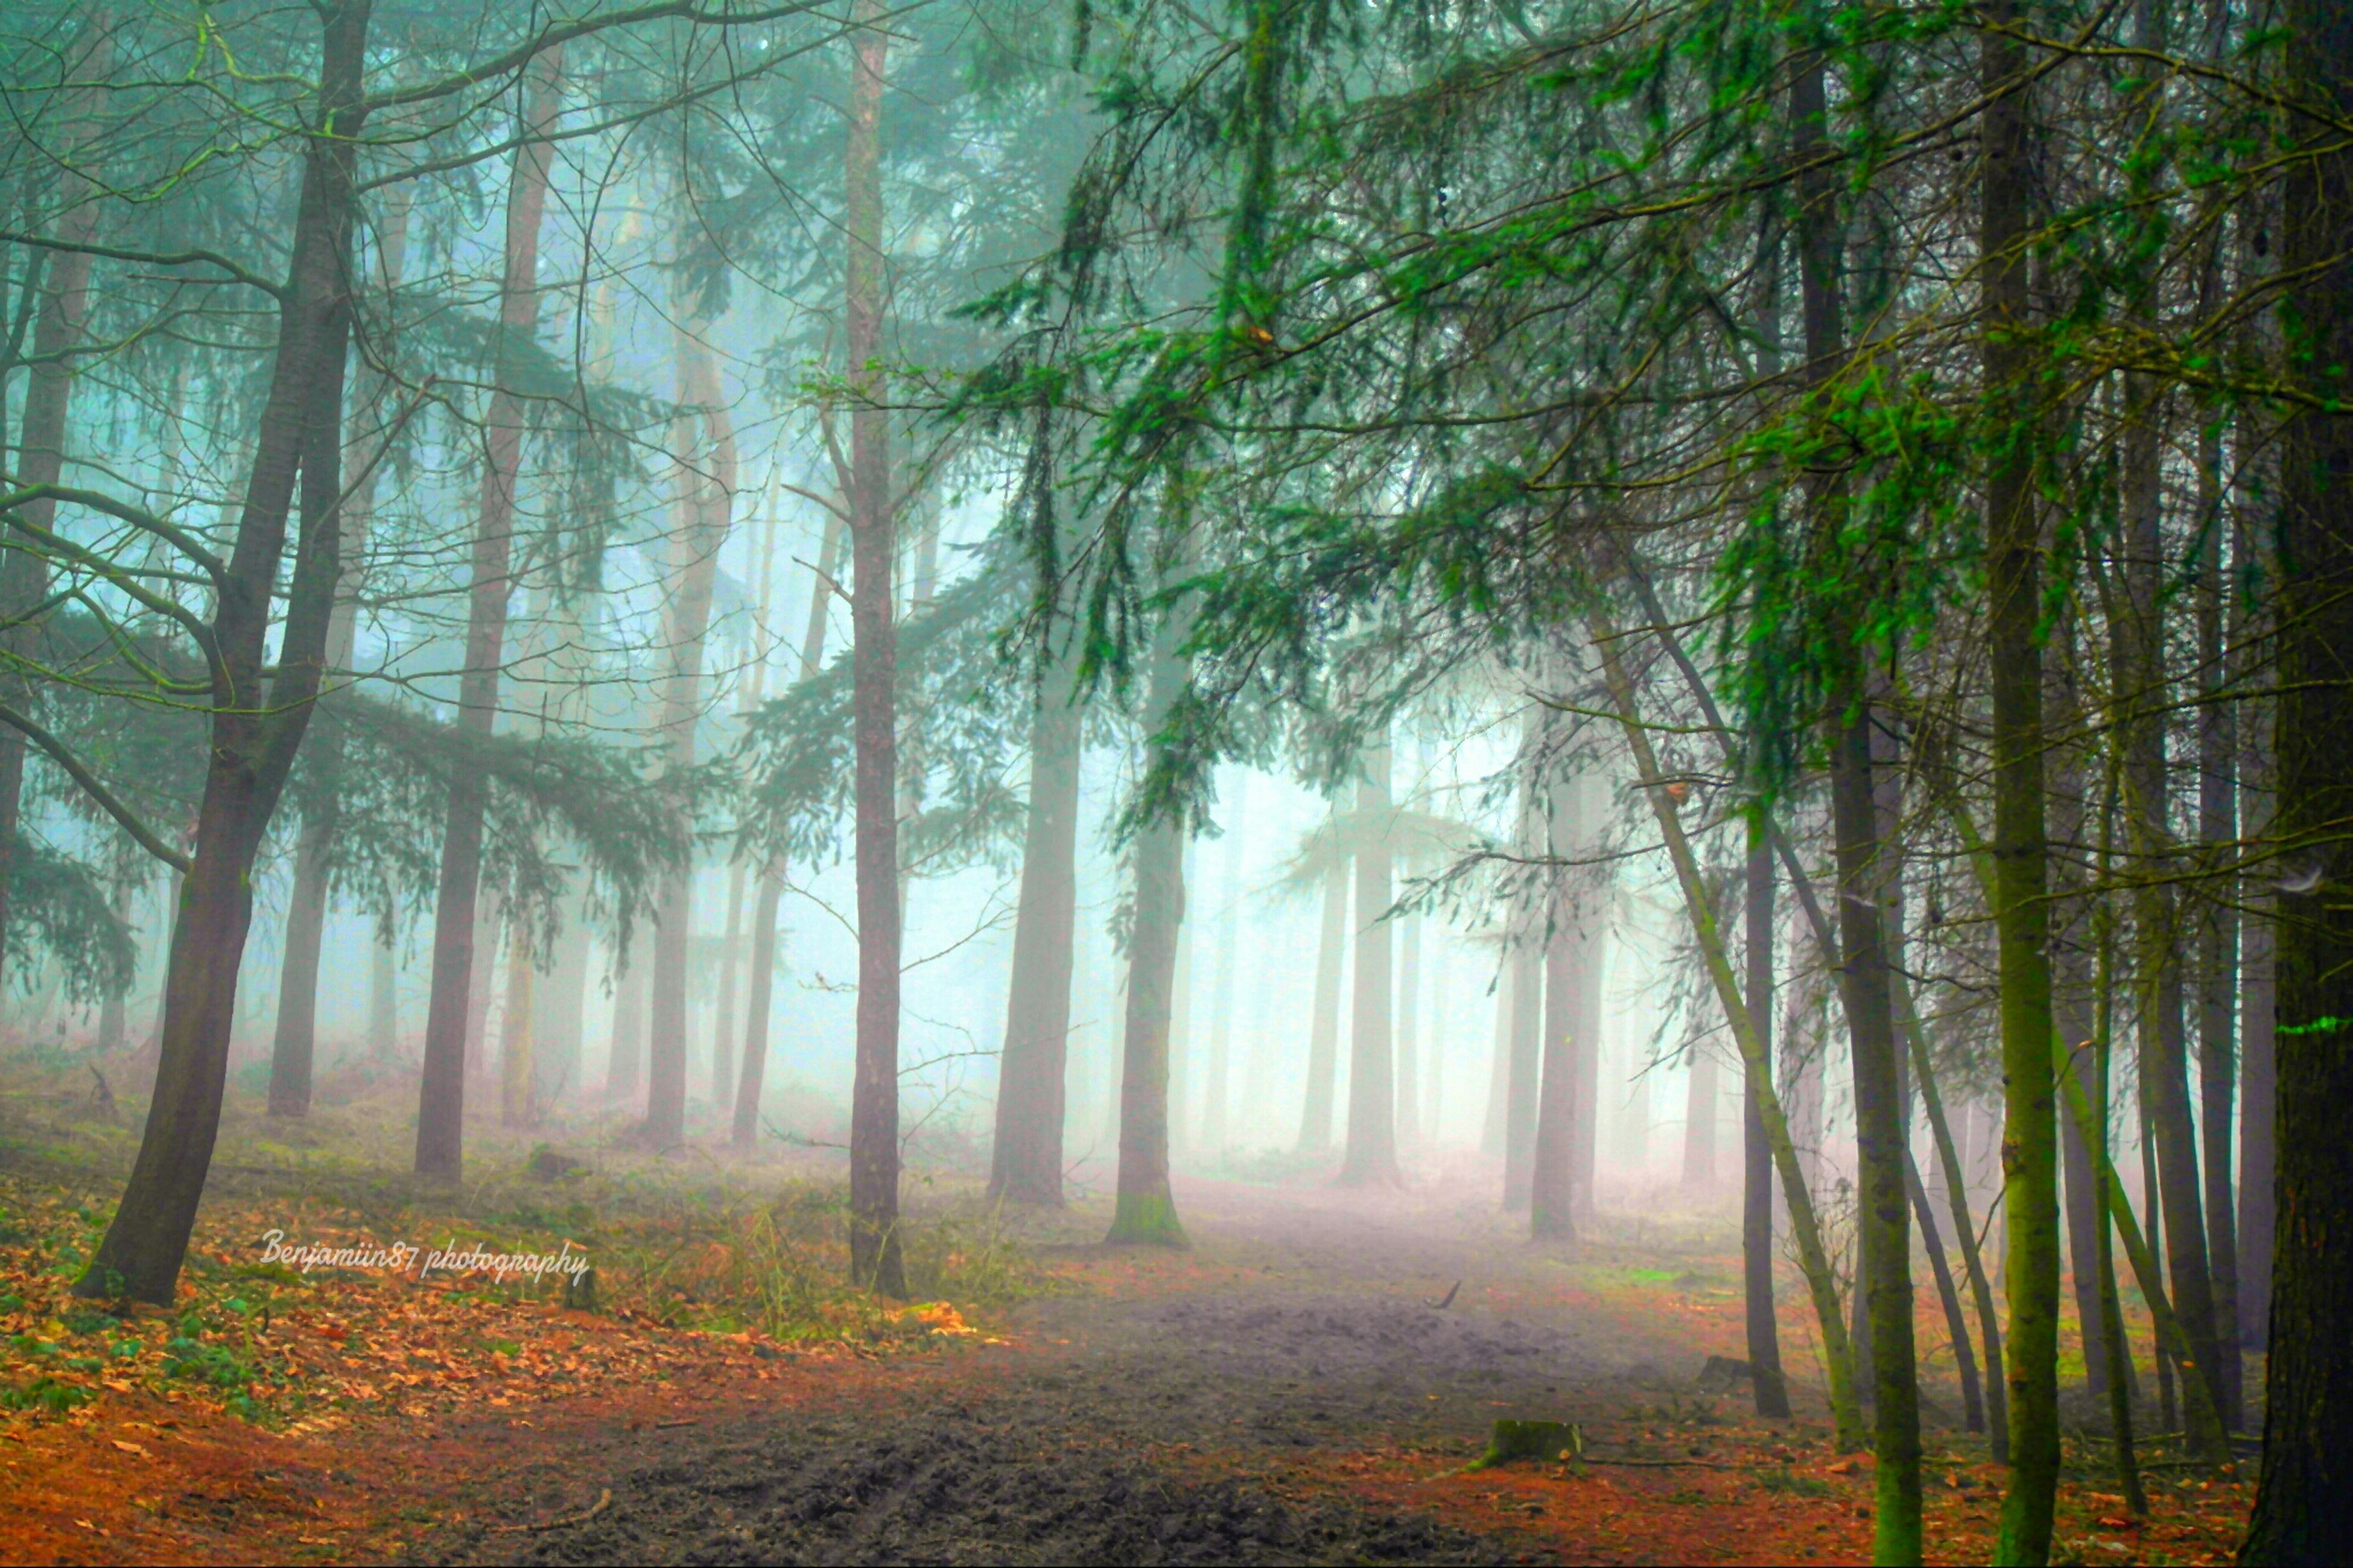 tree, forest, woodland, tranquility, tree trunk, tranquil scene, nature, growth, beauty in nature, scenics, non-urban scene, landscape, fog, idyllic, outdoors, woods, sunlight, branch, day, remote